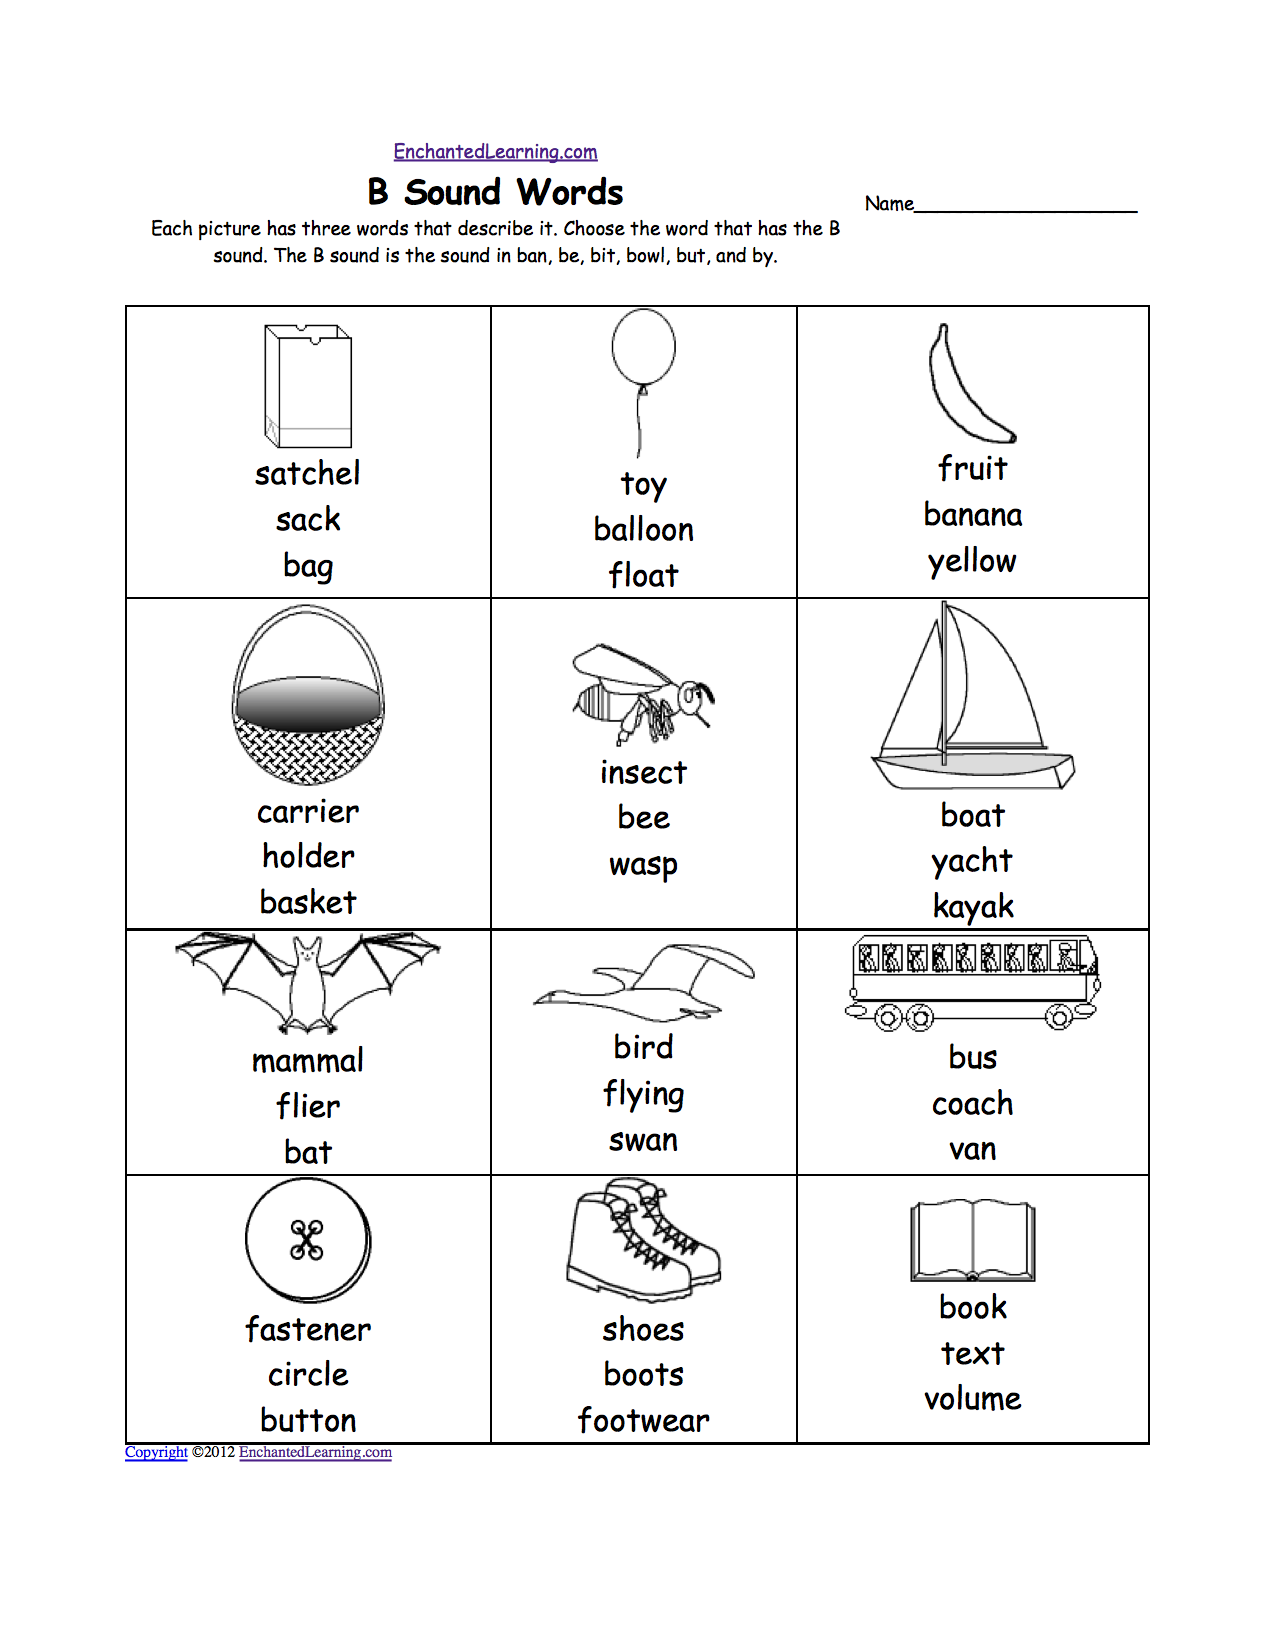 Aldiablosus  Gorgeous Phonics Worksheets Multiple Choice Worksheets To Print  With Great Quotbquot Sound Phonics Worksheet Multiple Choice Each Picture Has Three Words That Describe It Choose The Word That Has A Quotbquot Sound The Quotbquot Sound Is The Sound  With Beauteous Cell Worksheets High School Also Multiplication Worksheets For Th Graders In Addition Maths Key Stage  Worksheets And Maths Online Worksheets As Well As Worksheets Of Maths For Class  Additionally Moles Worksheets From Enchantedlearningcom With Aldiablosus  Great Phonics Worksheets Multiple Choice Worksheets To Print  With Beauteous Quotbquot Sound Phonics Worksheet Multiple Choice Each Picture Has Three Words That Describe It Choose The Word That Has A Quotbquot Sound The Quotbquot Sound Is The Sound  And Gorgeous Cell Worksheets High School Also Multiplication Worksheets For Th Graders In Addition Maths Key Stage  Worksheets From Enchantedlearningcom